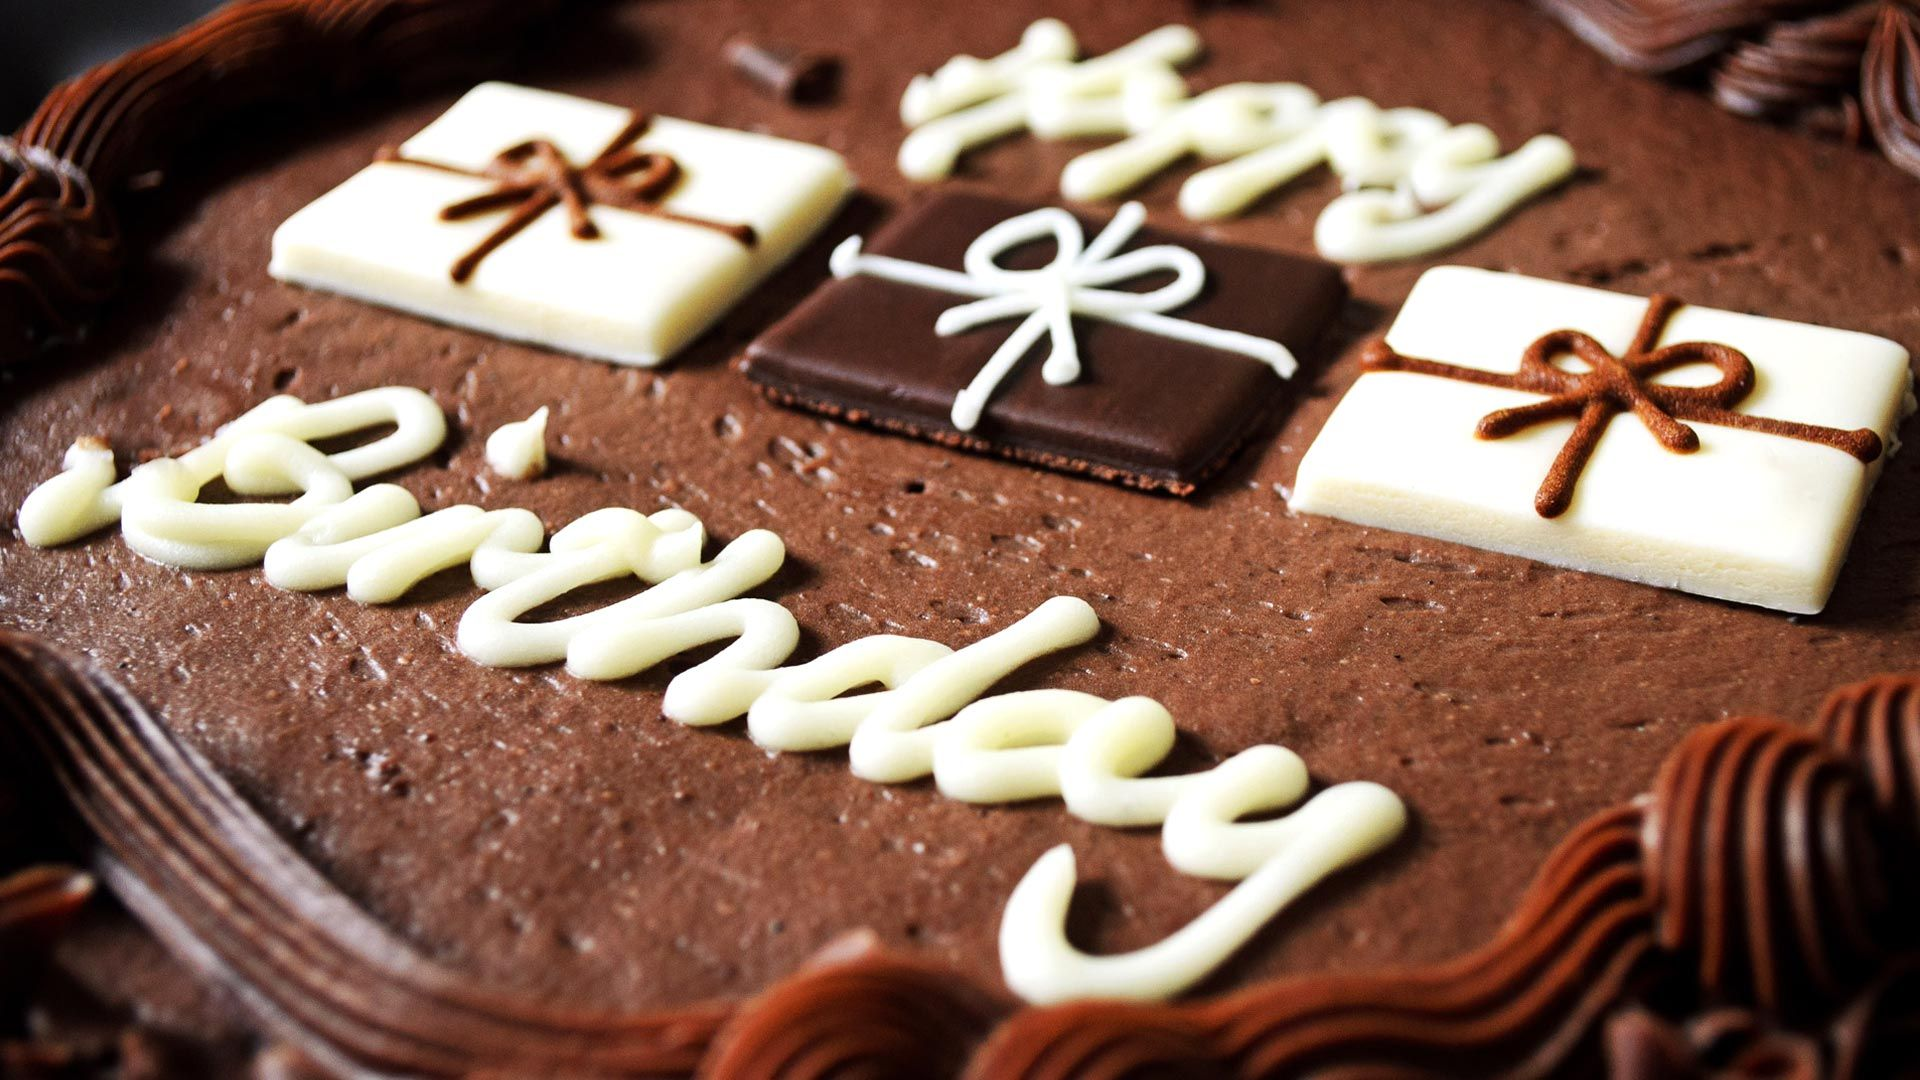 1920x1080 px   Cake Wallpapers June Gillette download on 1920x1080